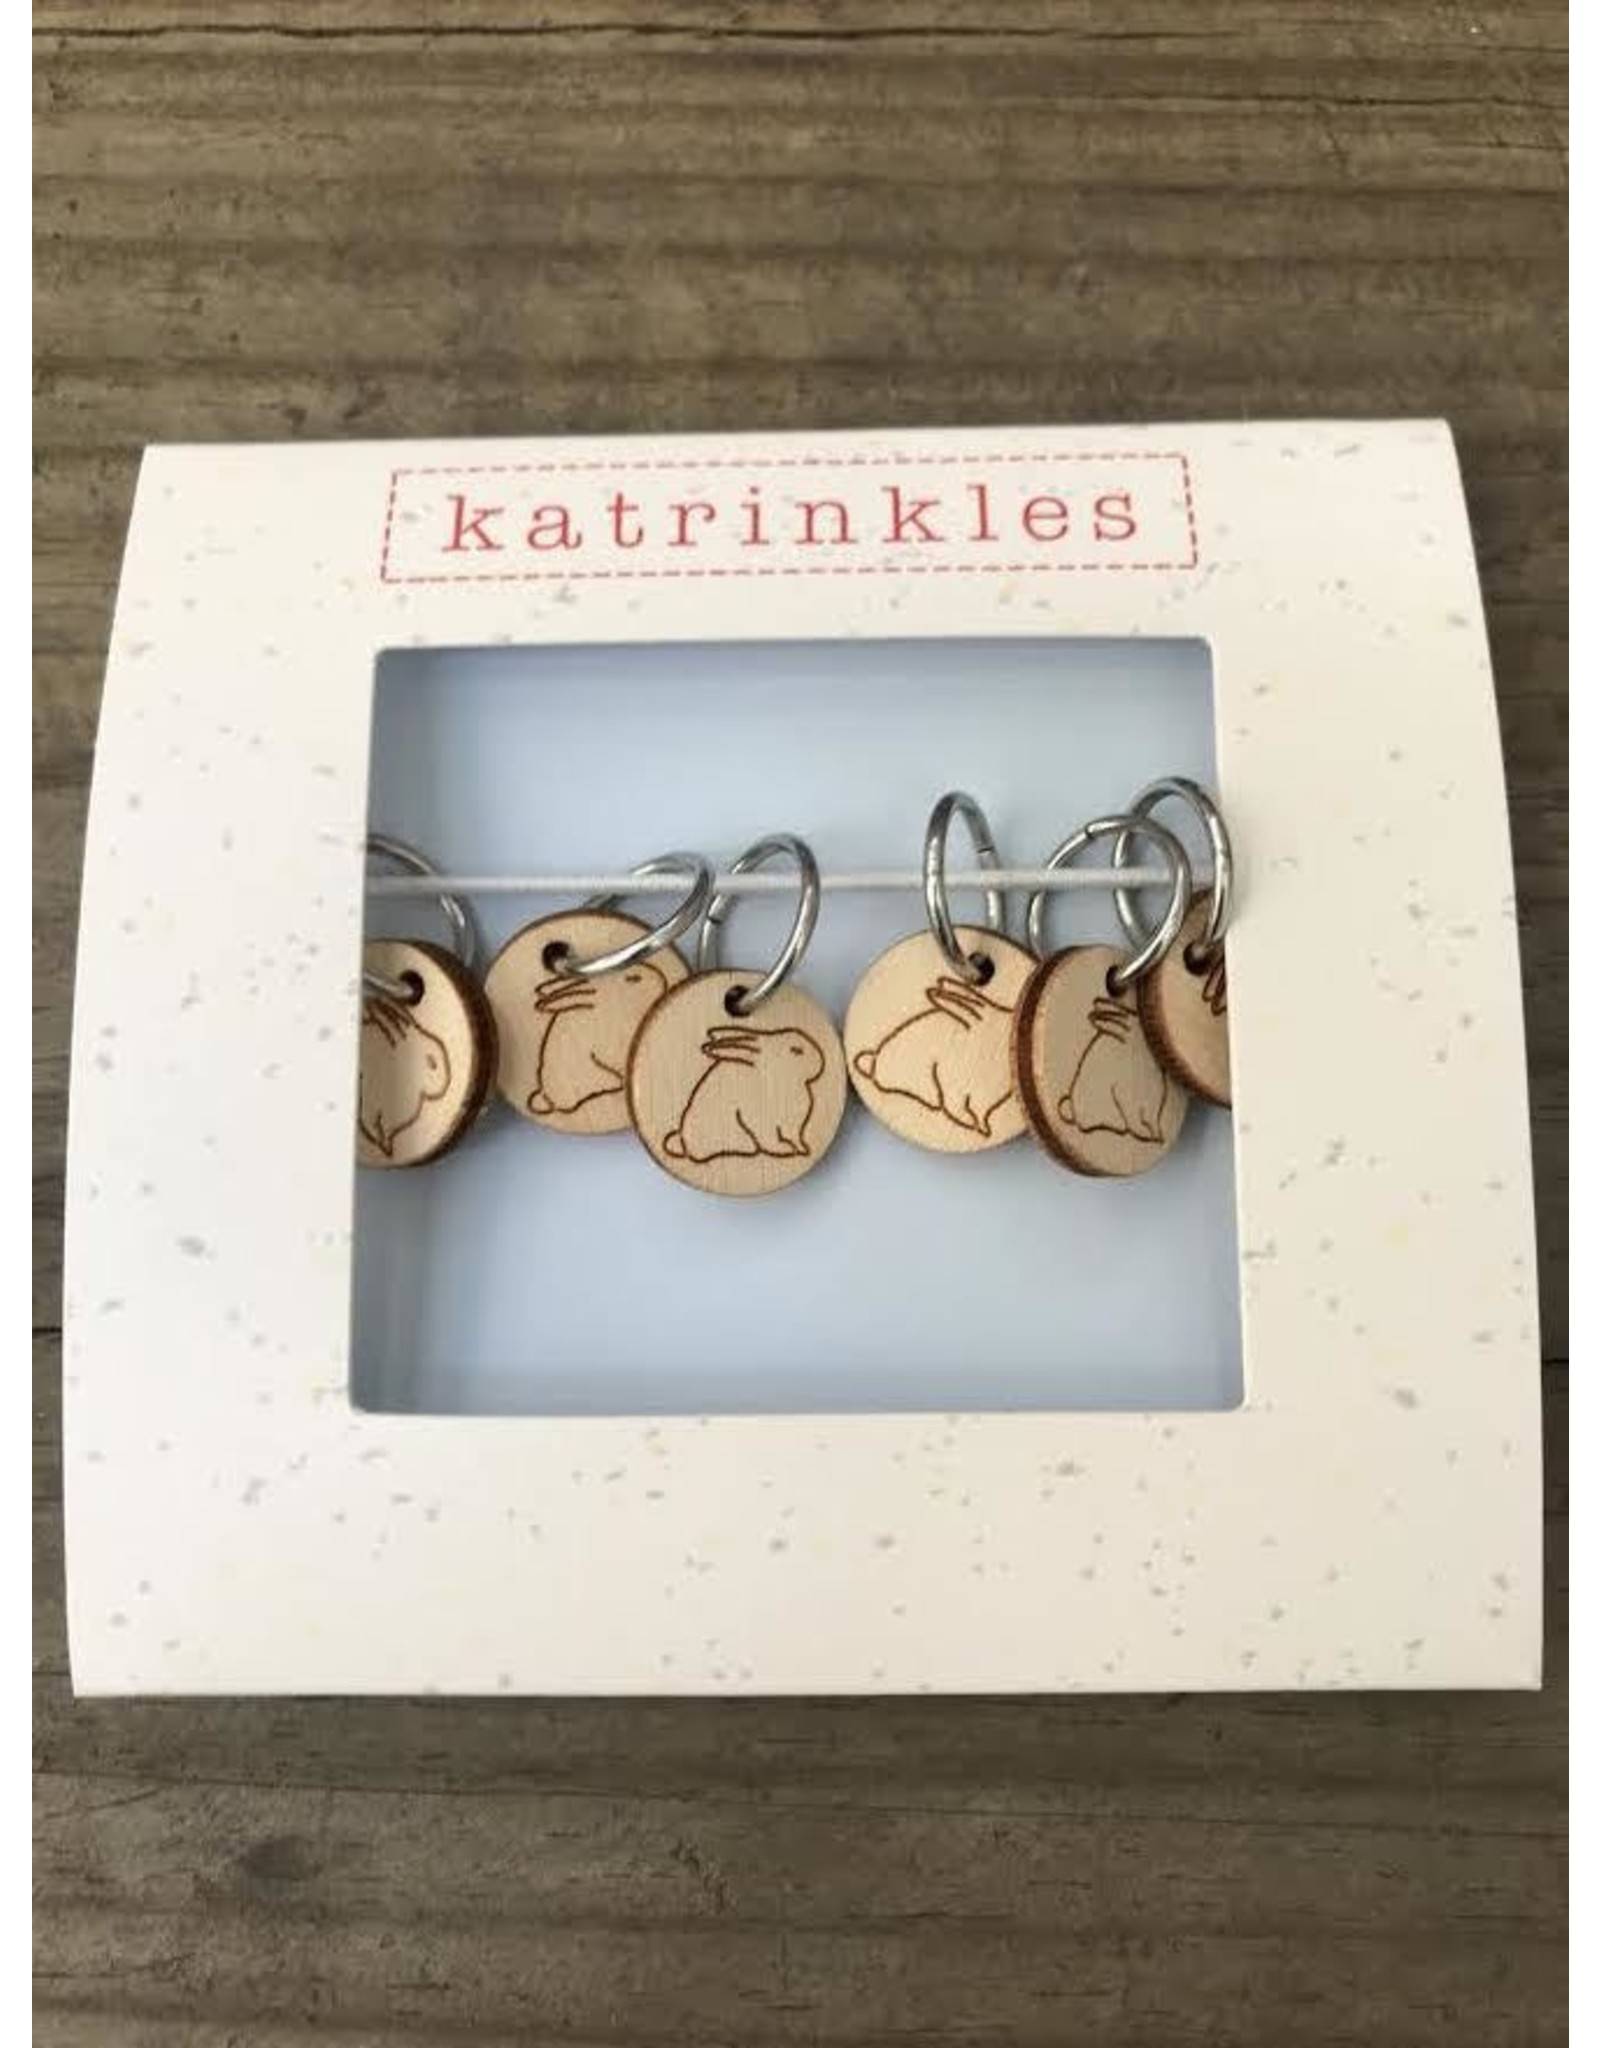 Bunny style ring stitch markers by Katrinkles